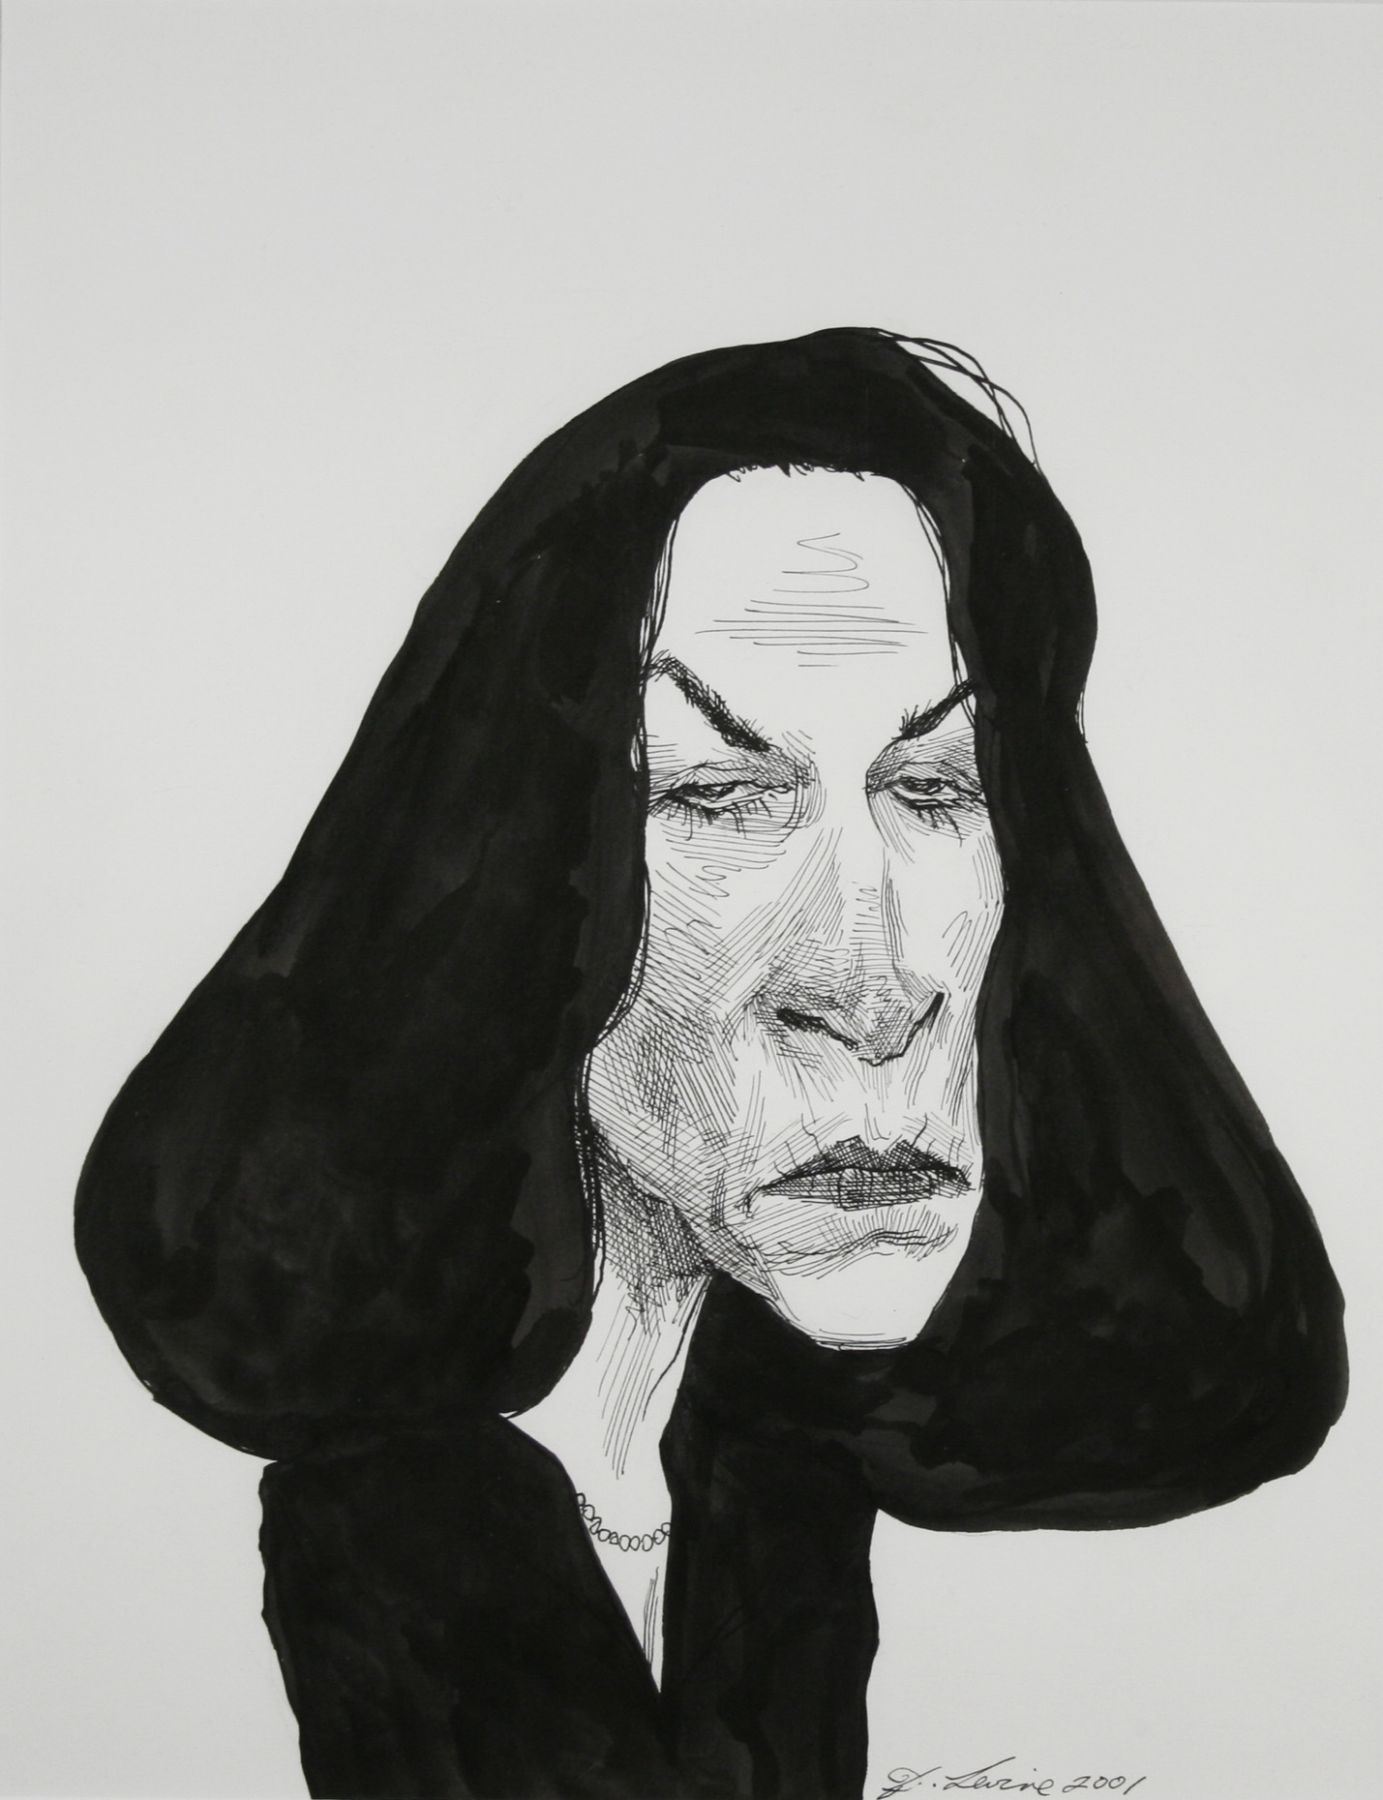 David Levine, Secretary of State - Florida Katherine Harris, 2001, ink on paper, 14 x 11 inches